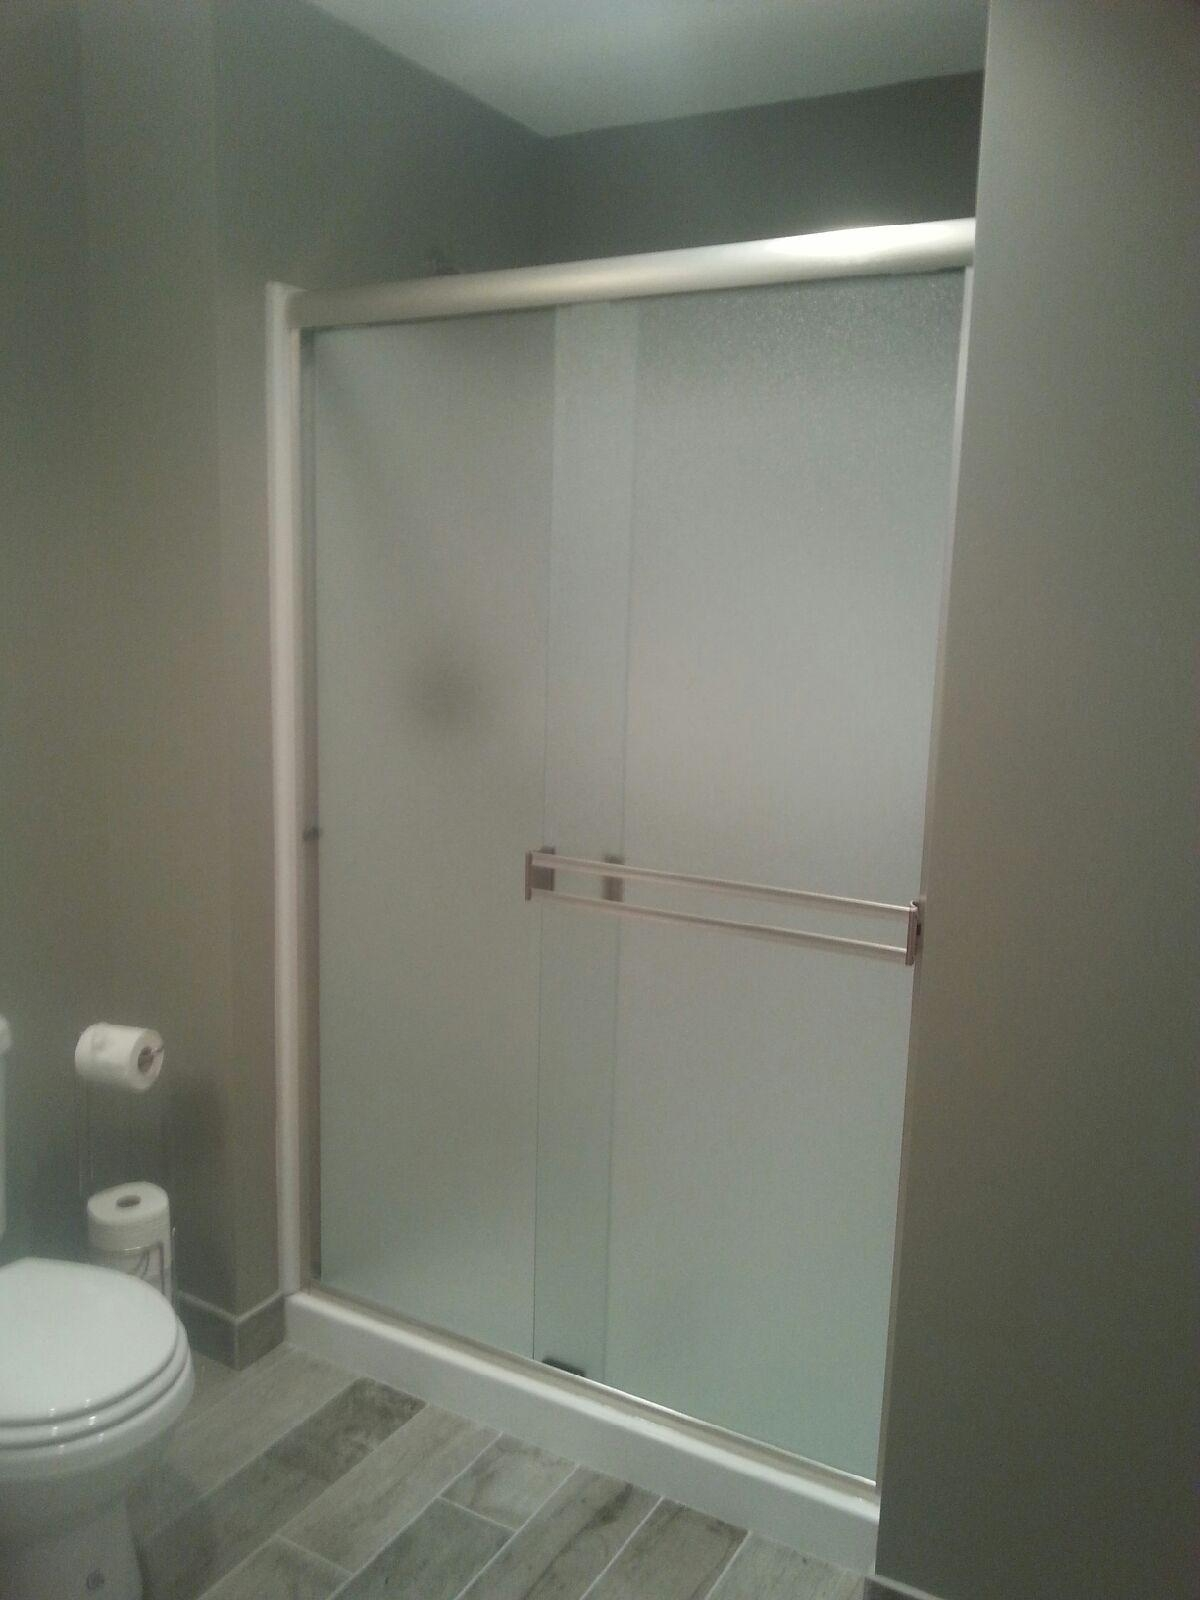 Semiframeless Standard Brushed Nickel-Rain bypass shower door